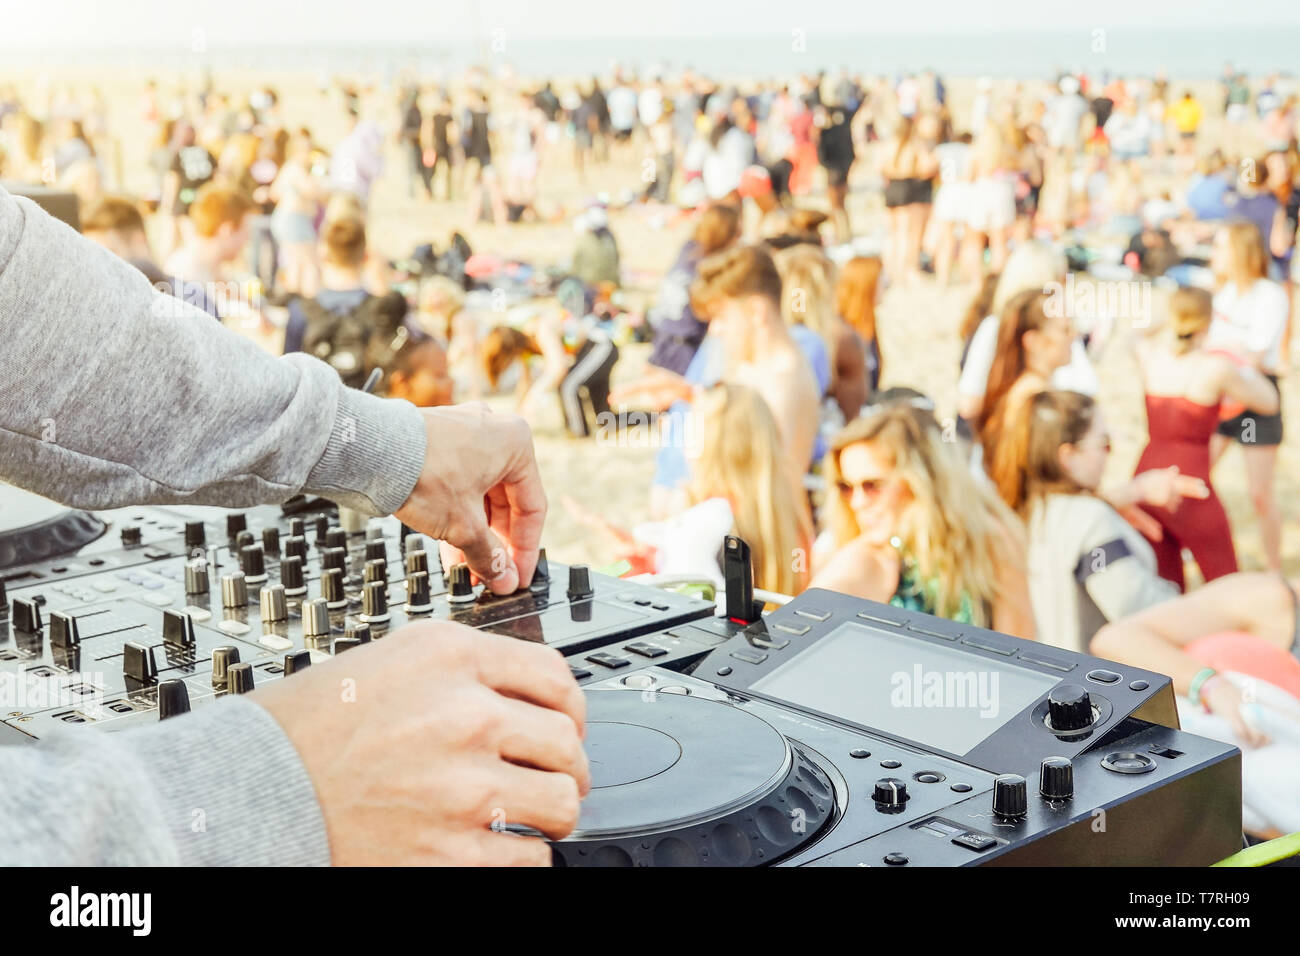 Close up of DJ's hand playing music at turntable at beach party festival - Crowd people dancing and having fun in club outdoor - Stock Image